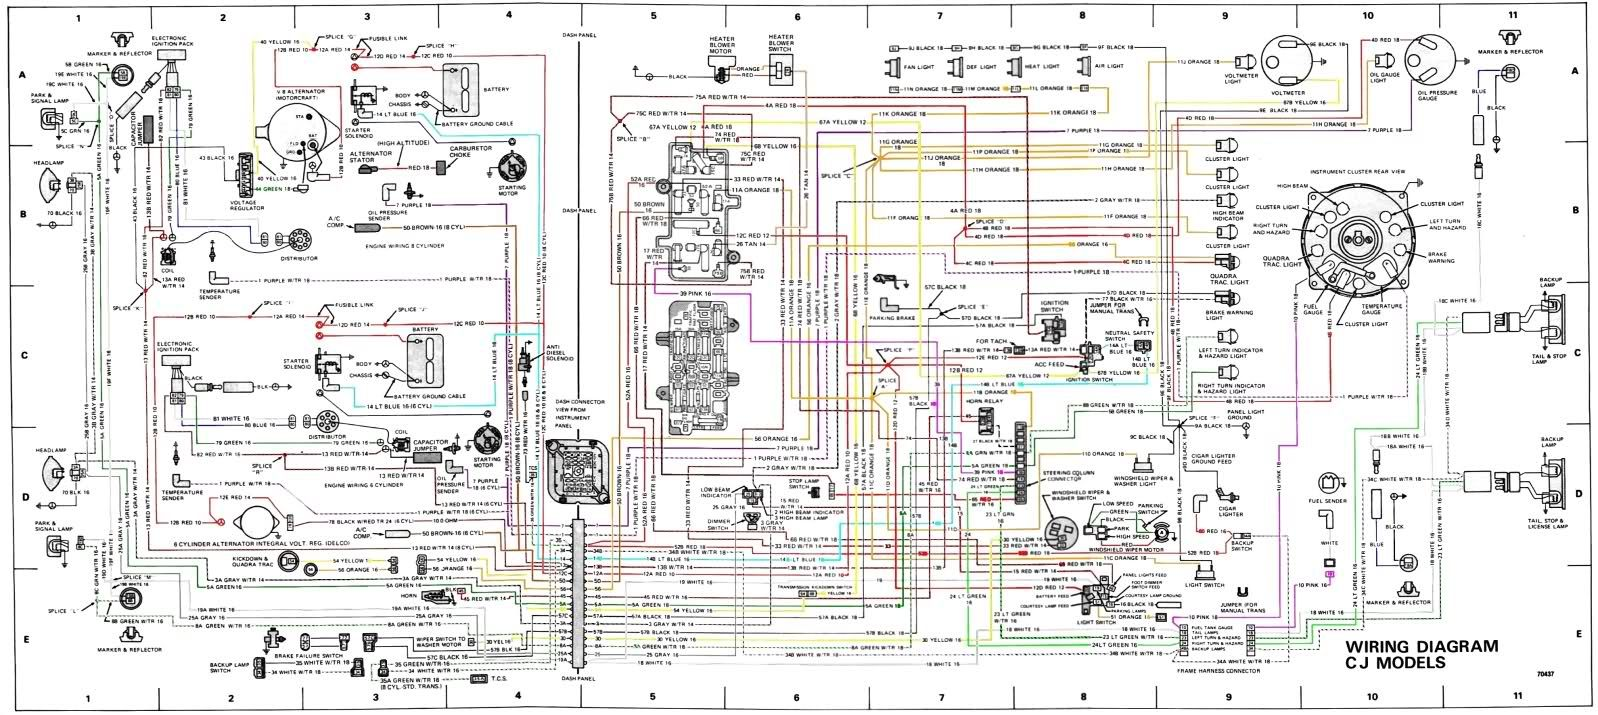 small resolution of jeep cj7 wiring diagram wiring diagram m6jeep cj7 wiring diagram unlimited wiring diagram jeep cj7 fuel